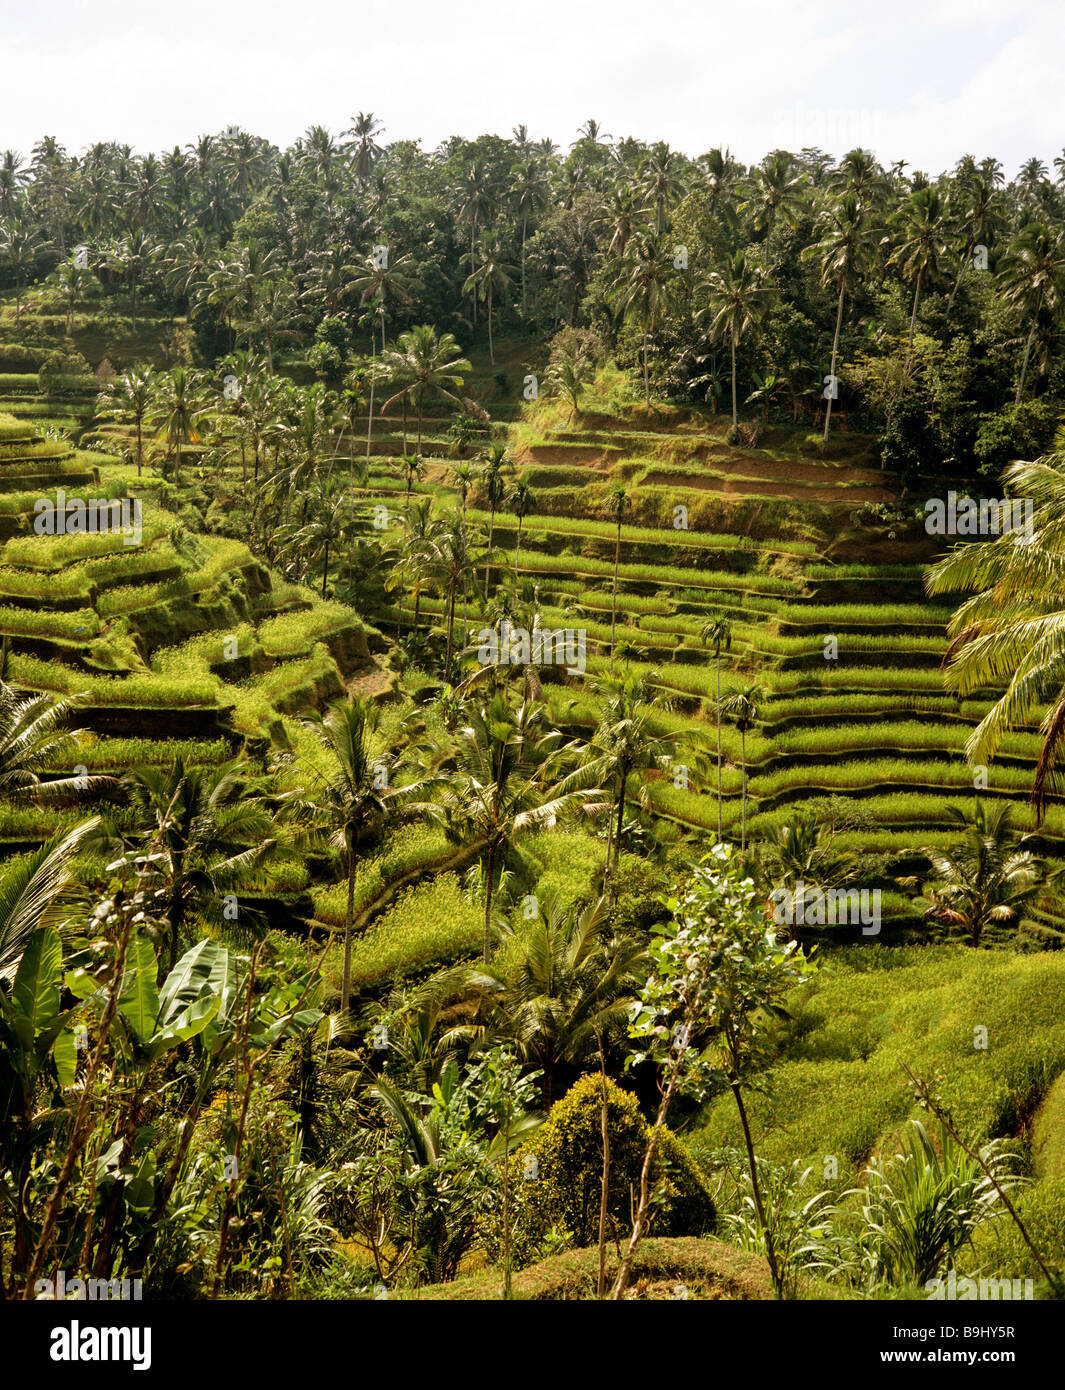 Rice paddies near Ubud, Bali, Indonesia, south-east Asia - Stock Image